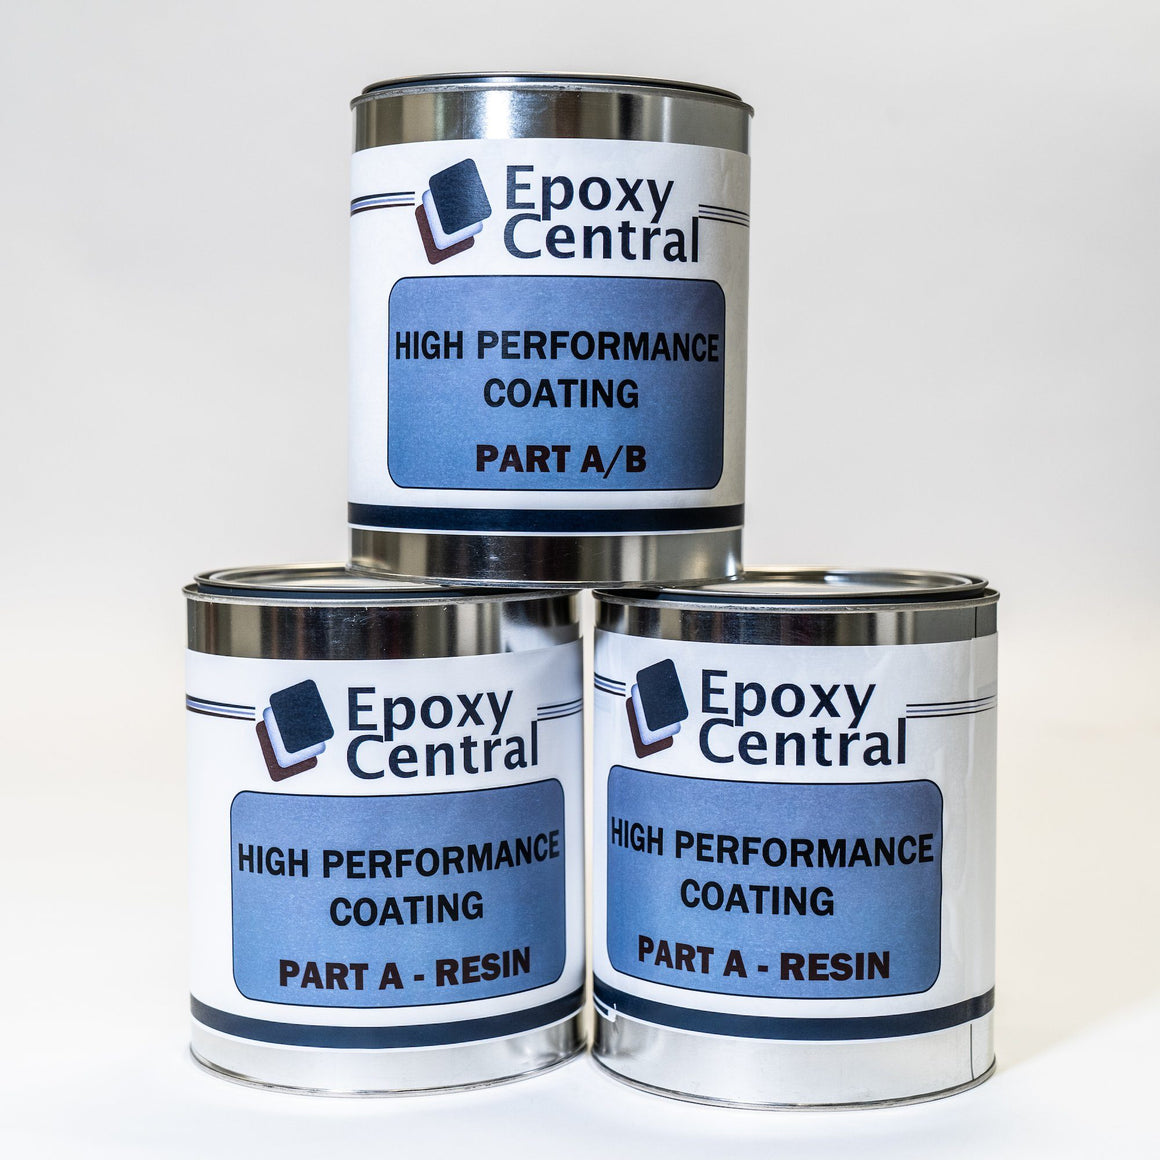 Topcoat - Polyurethane Military Grade Topcoat Low VOC